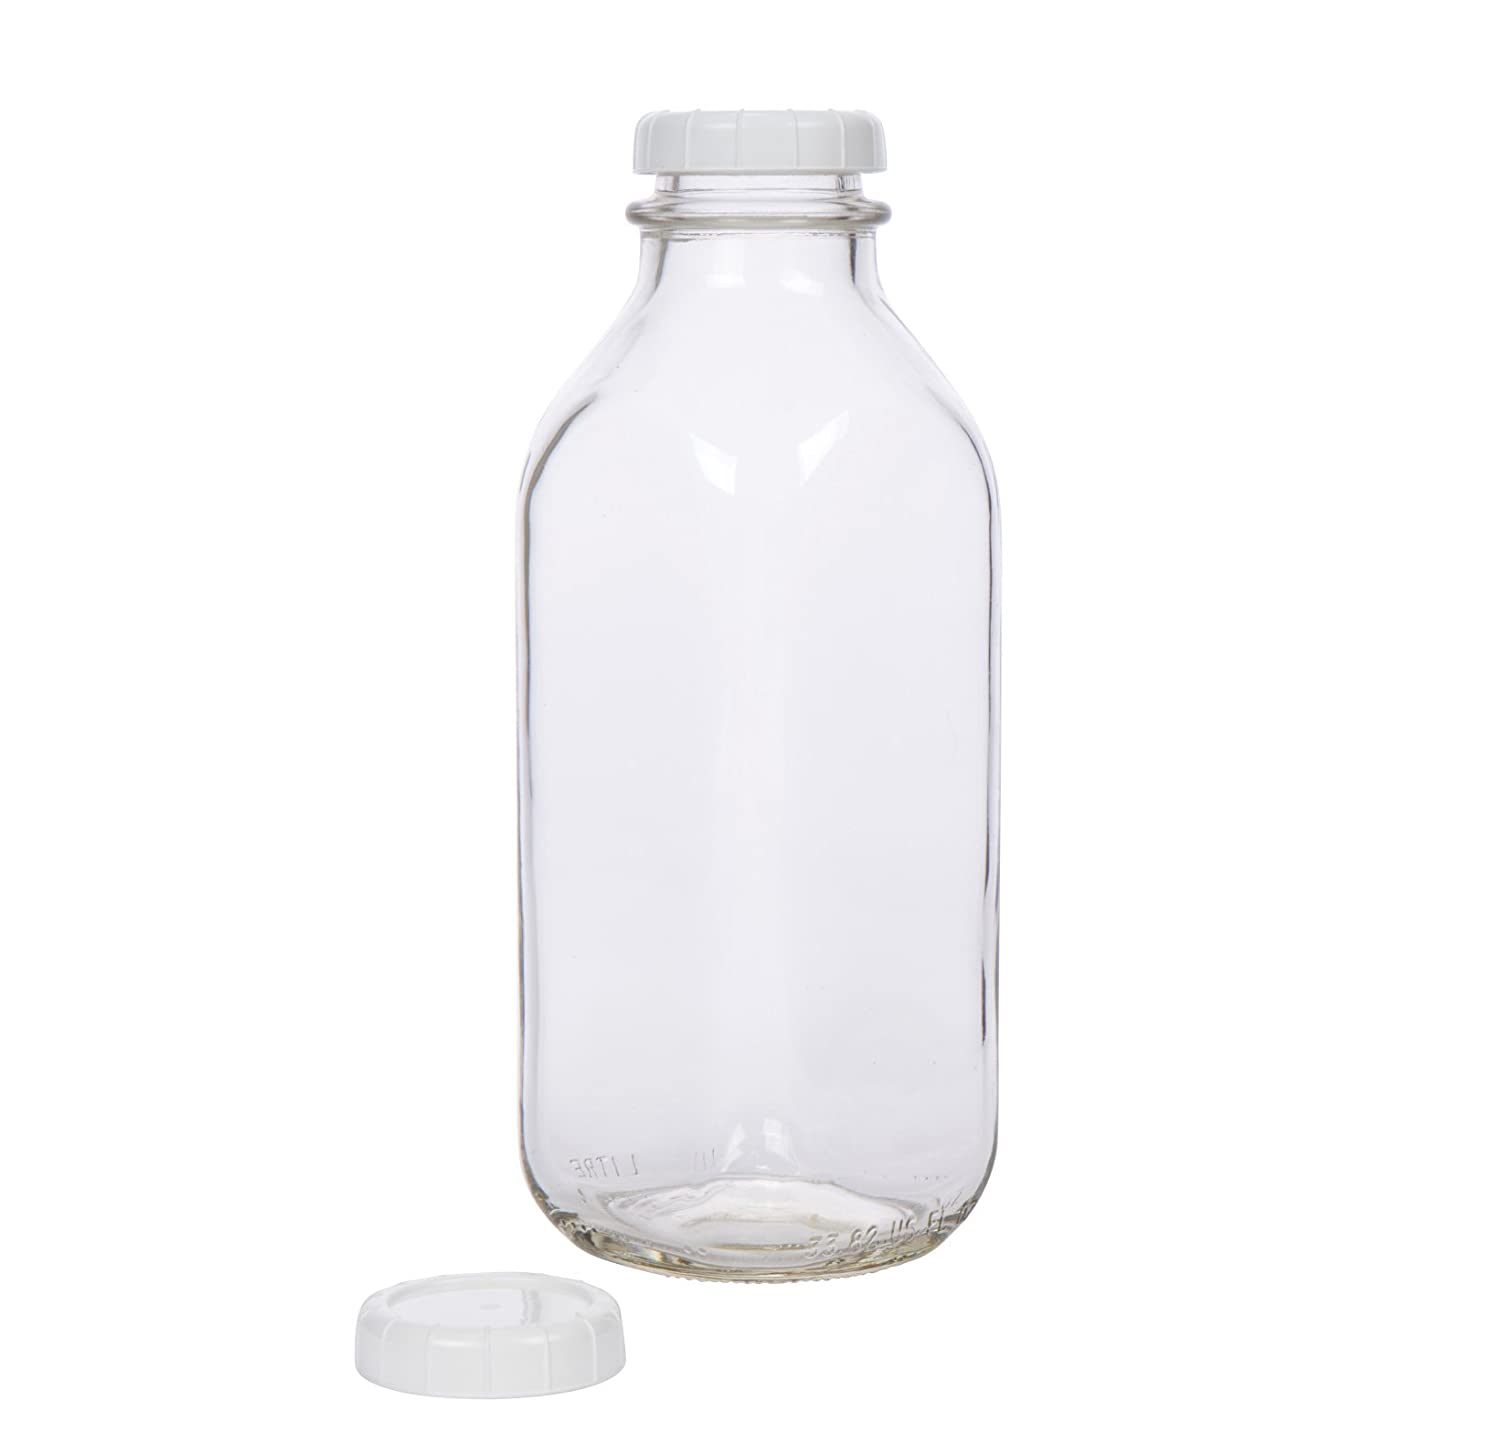 Glass Milk Bottle - USA Made 33.8 oz Jug with Extra Lid MB-33-1